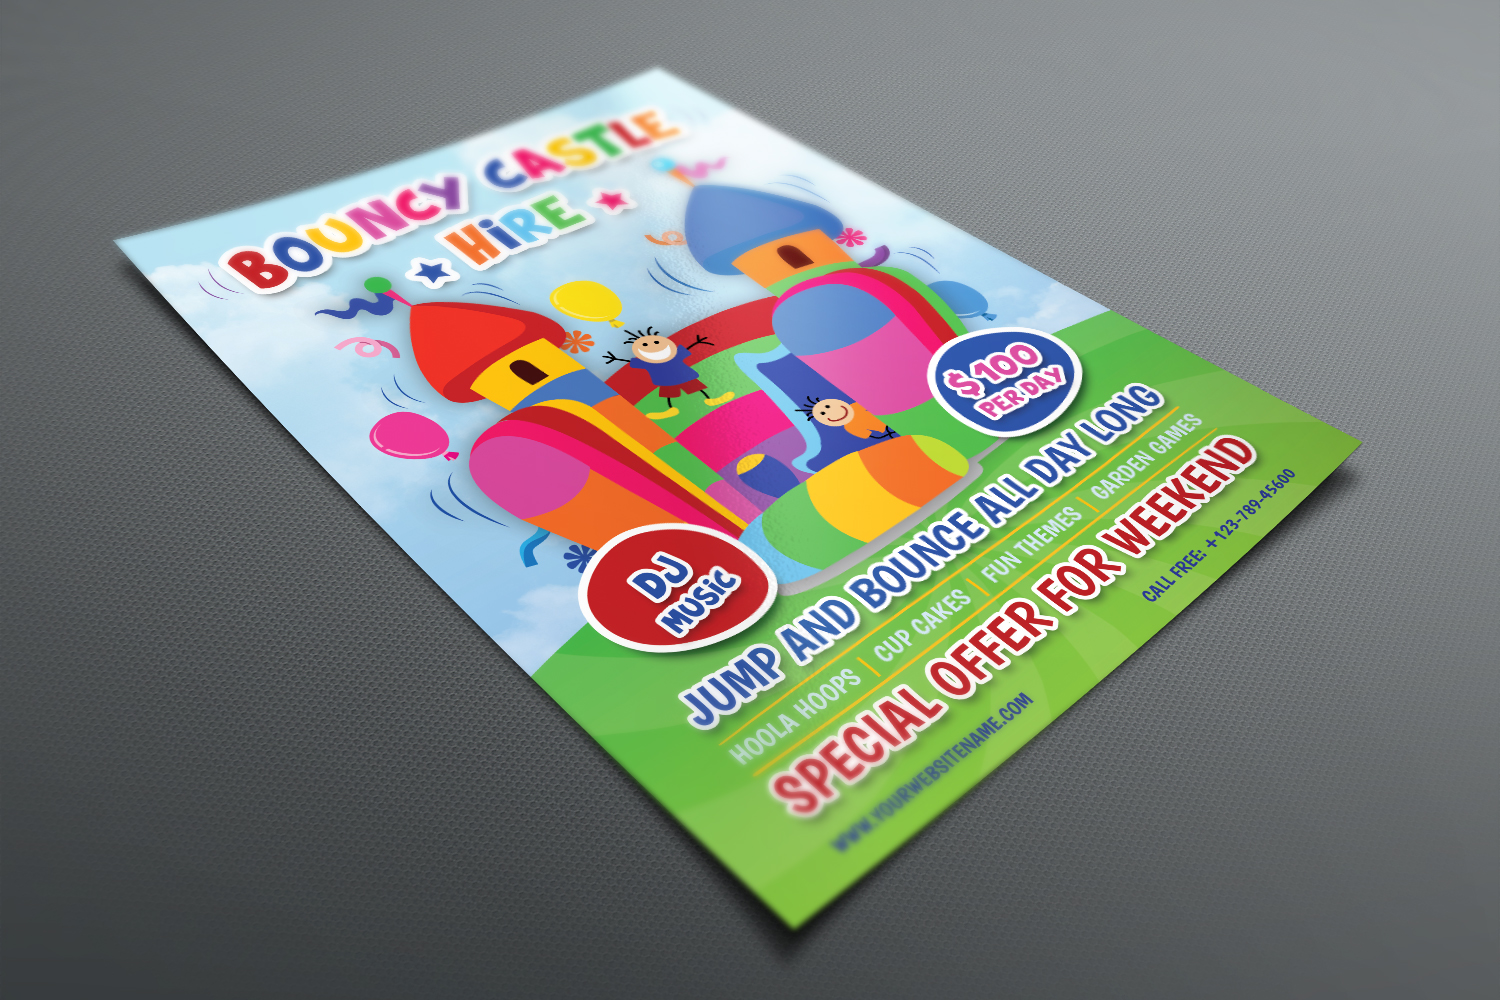 Bouncy Castle Hire Flyer Template example image 3